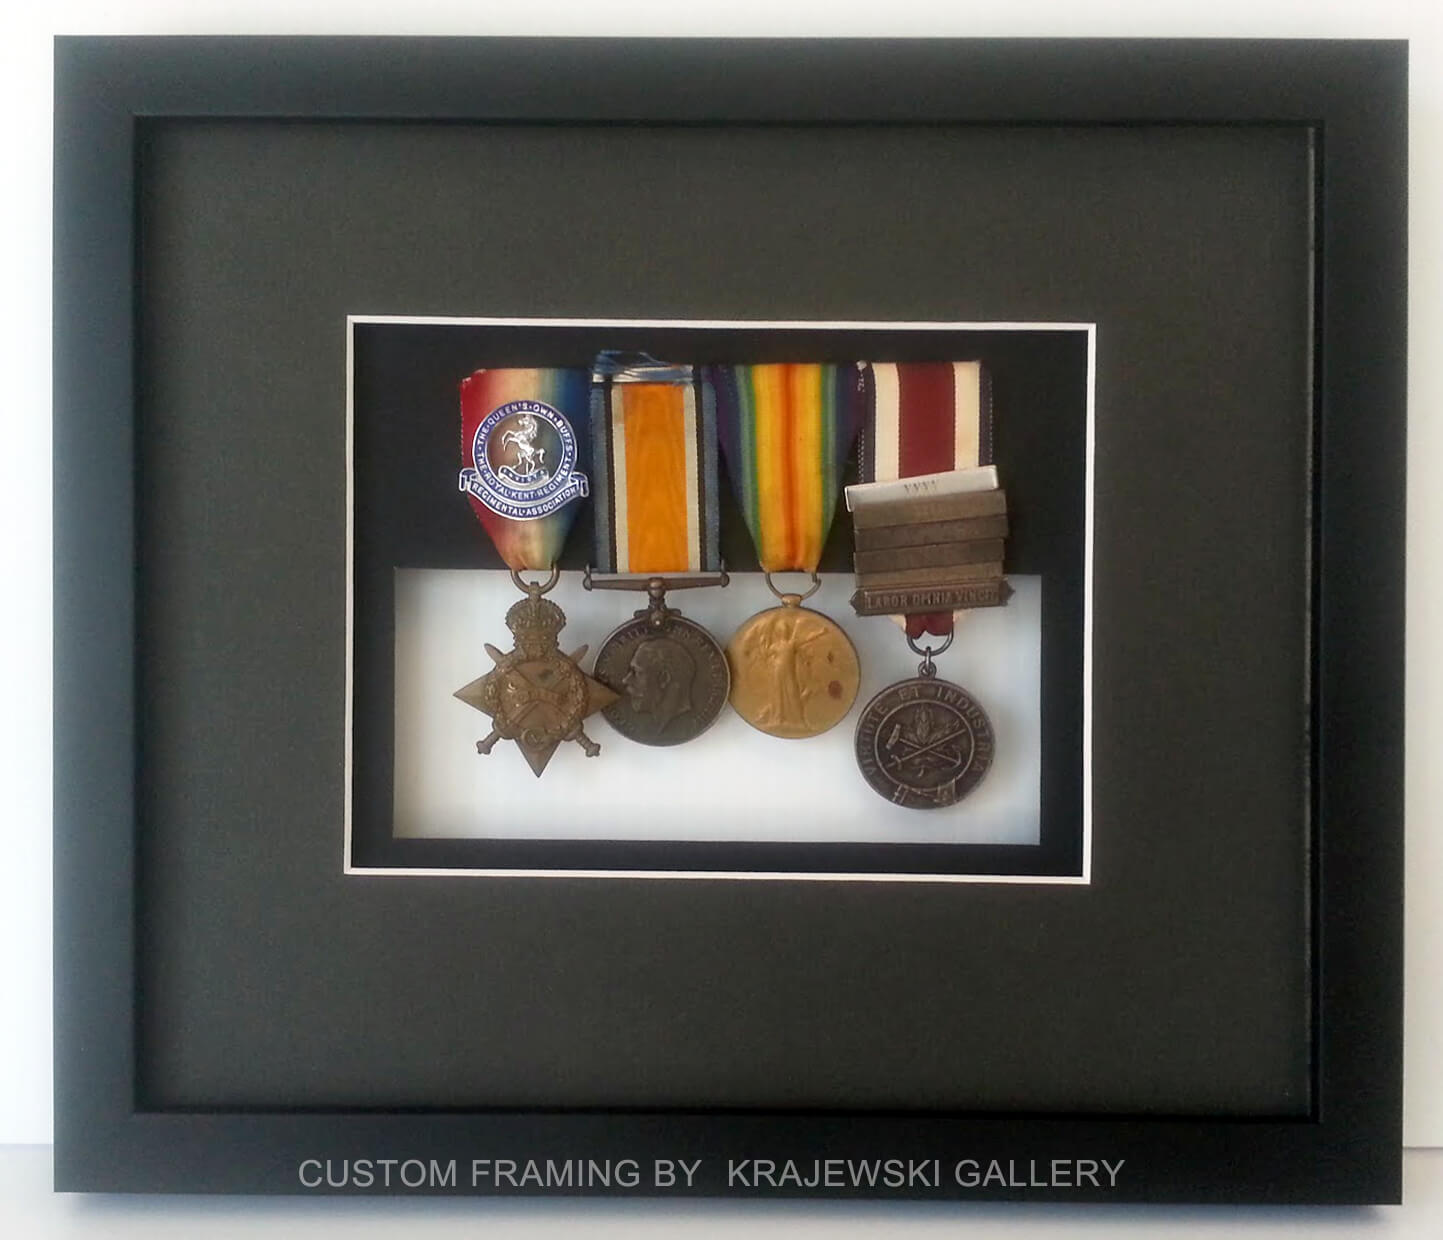 Custom Picture Framing by Krajewski Gallery: World War 2 medals custom framed with glass in the back showing off the other side